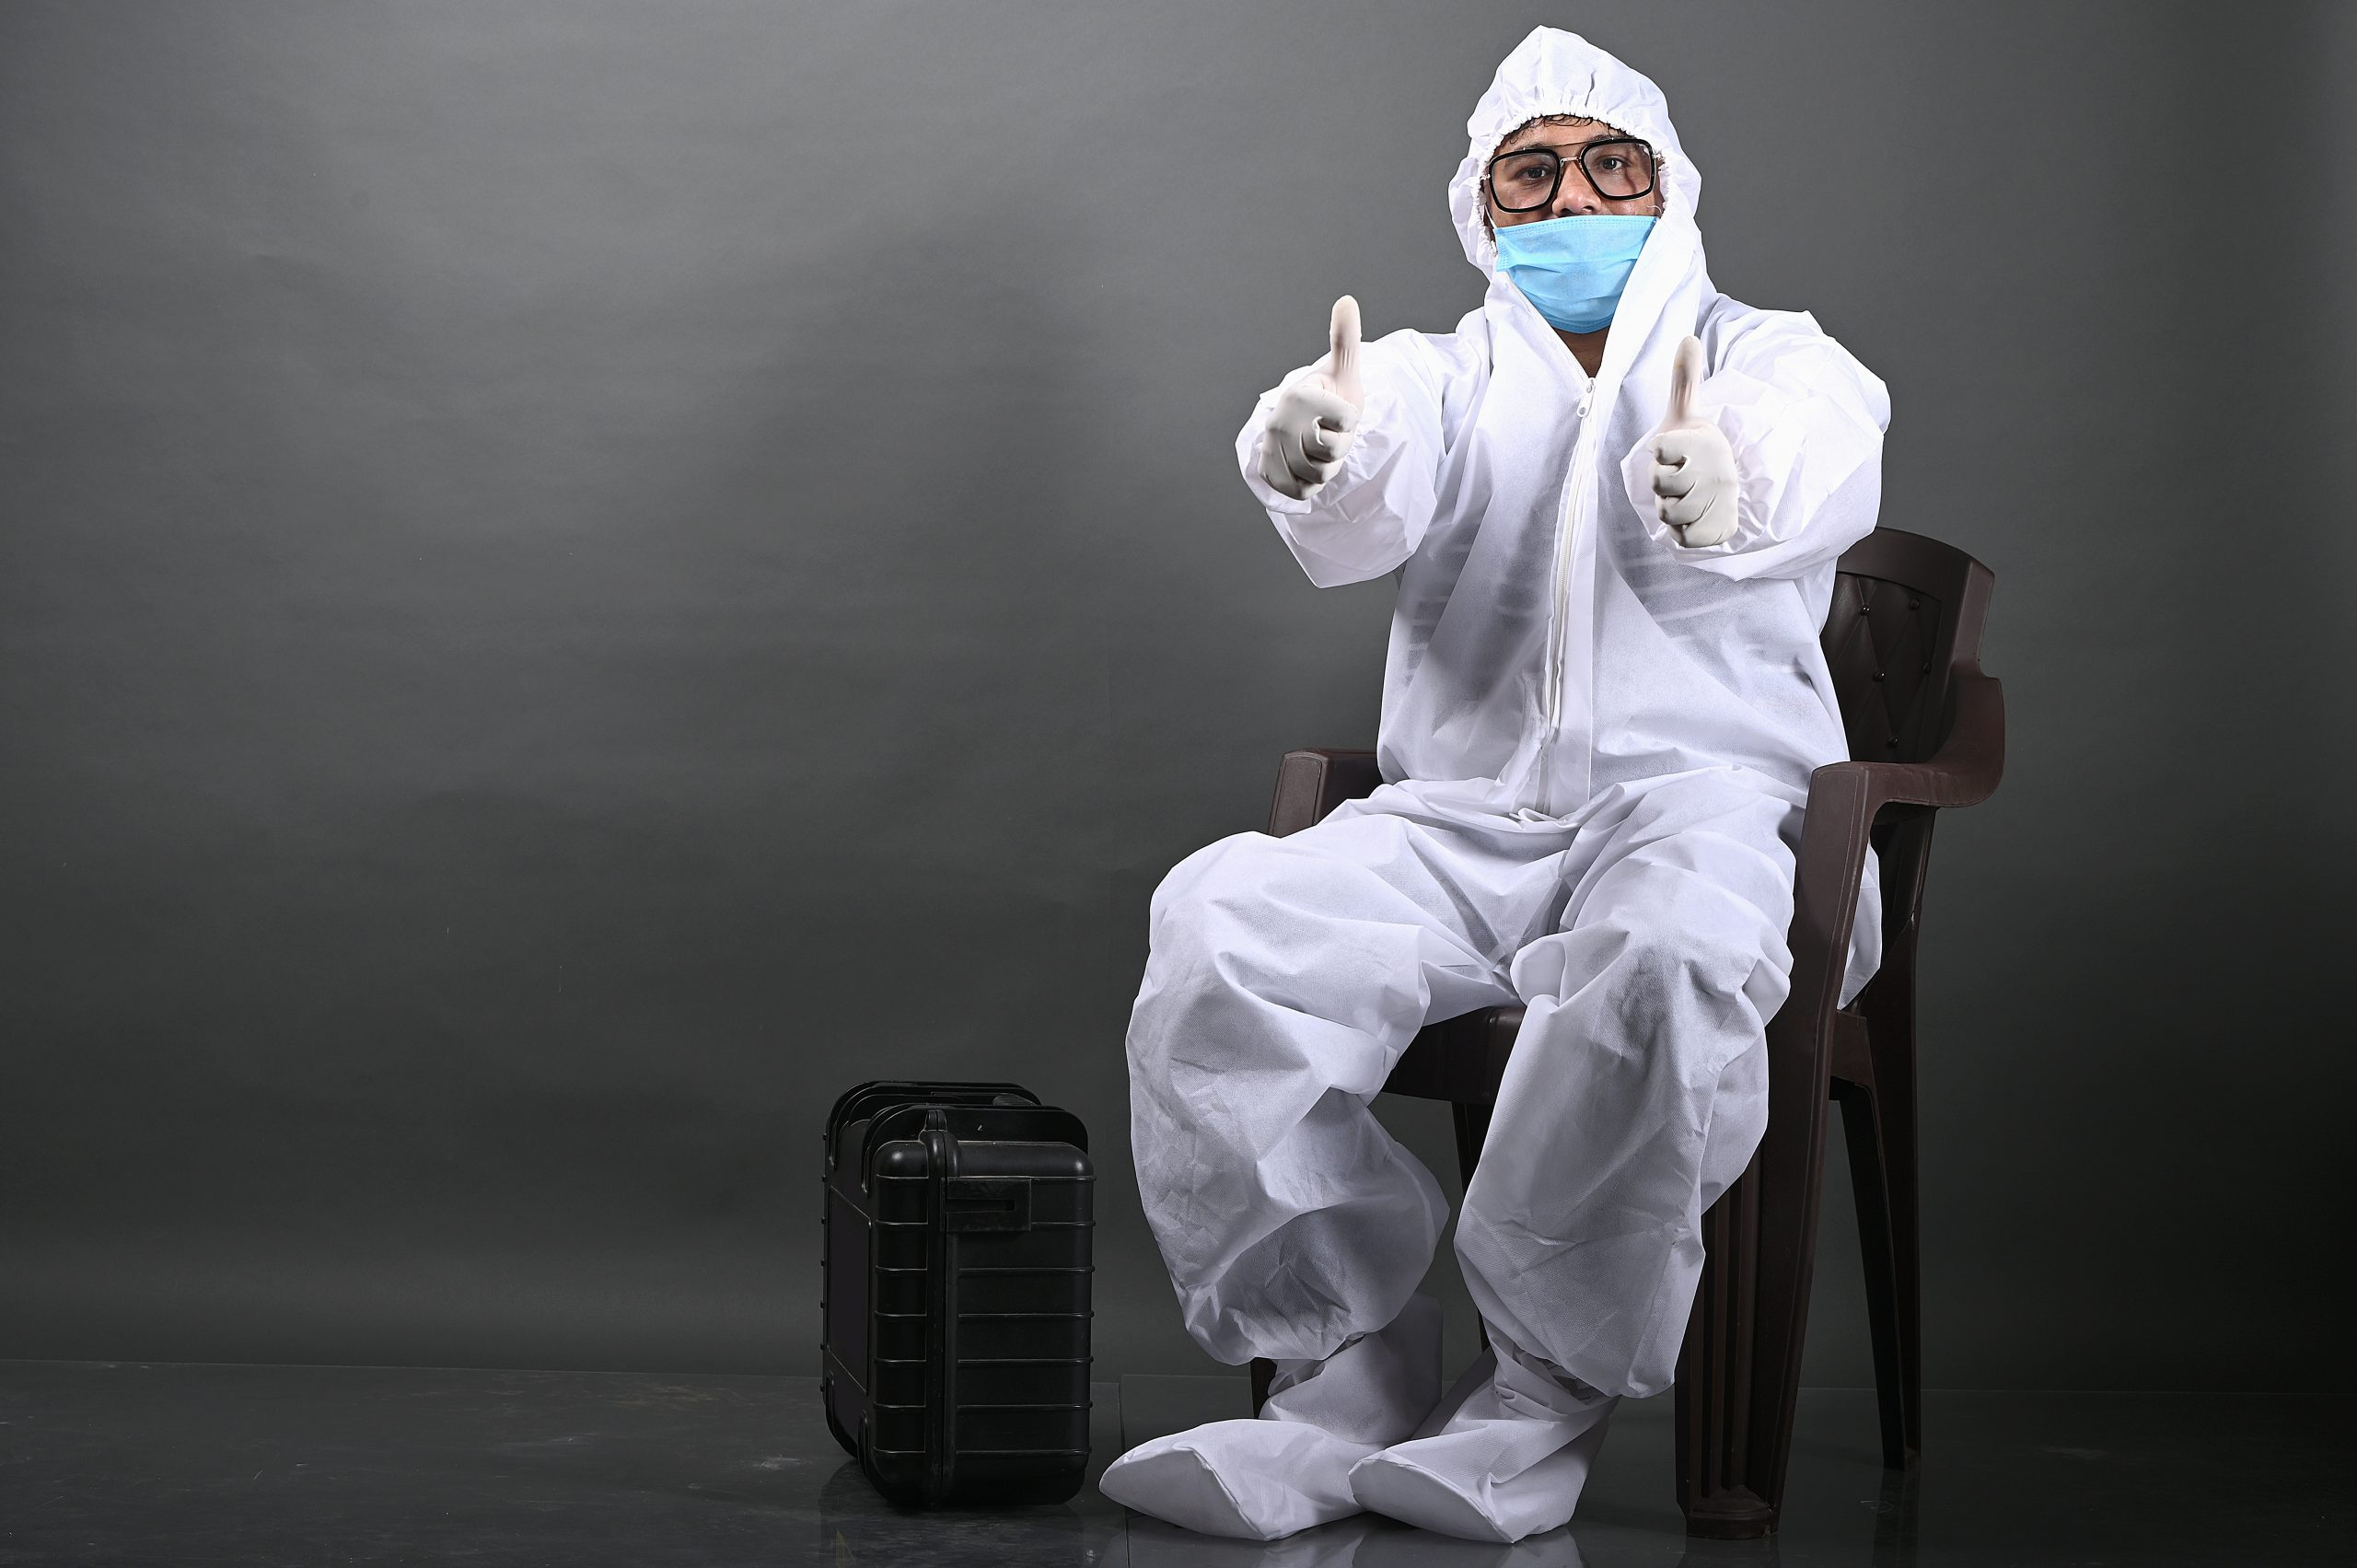 Doctor gesturing while wearing PPE kit